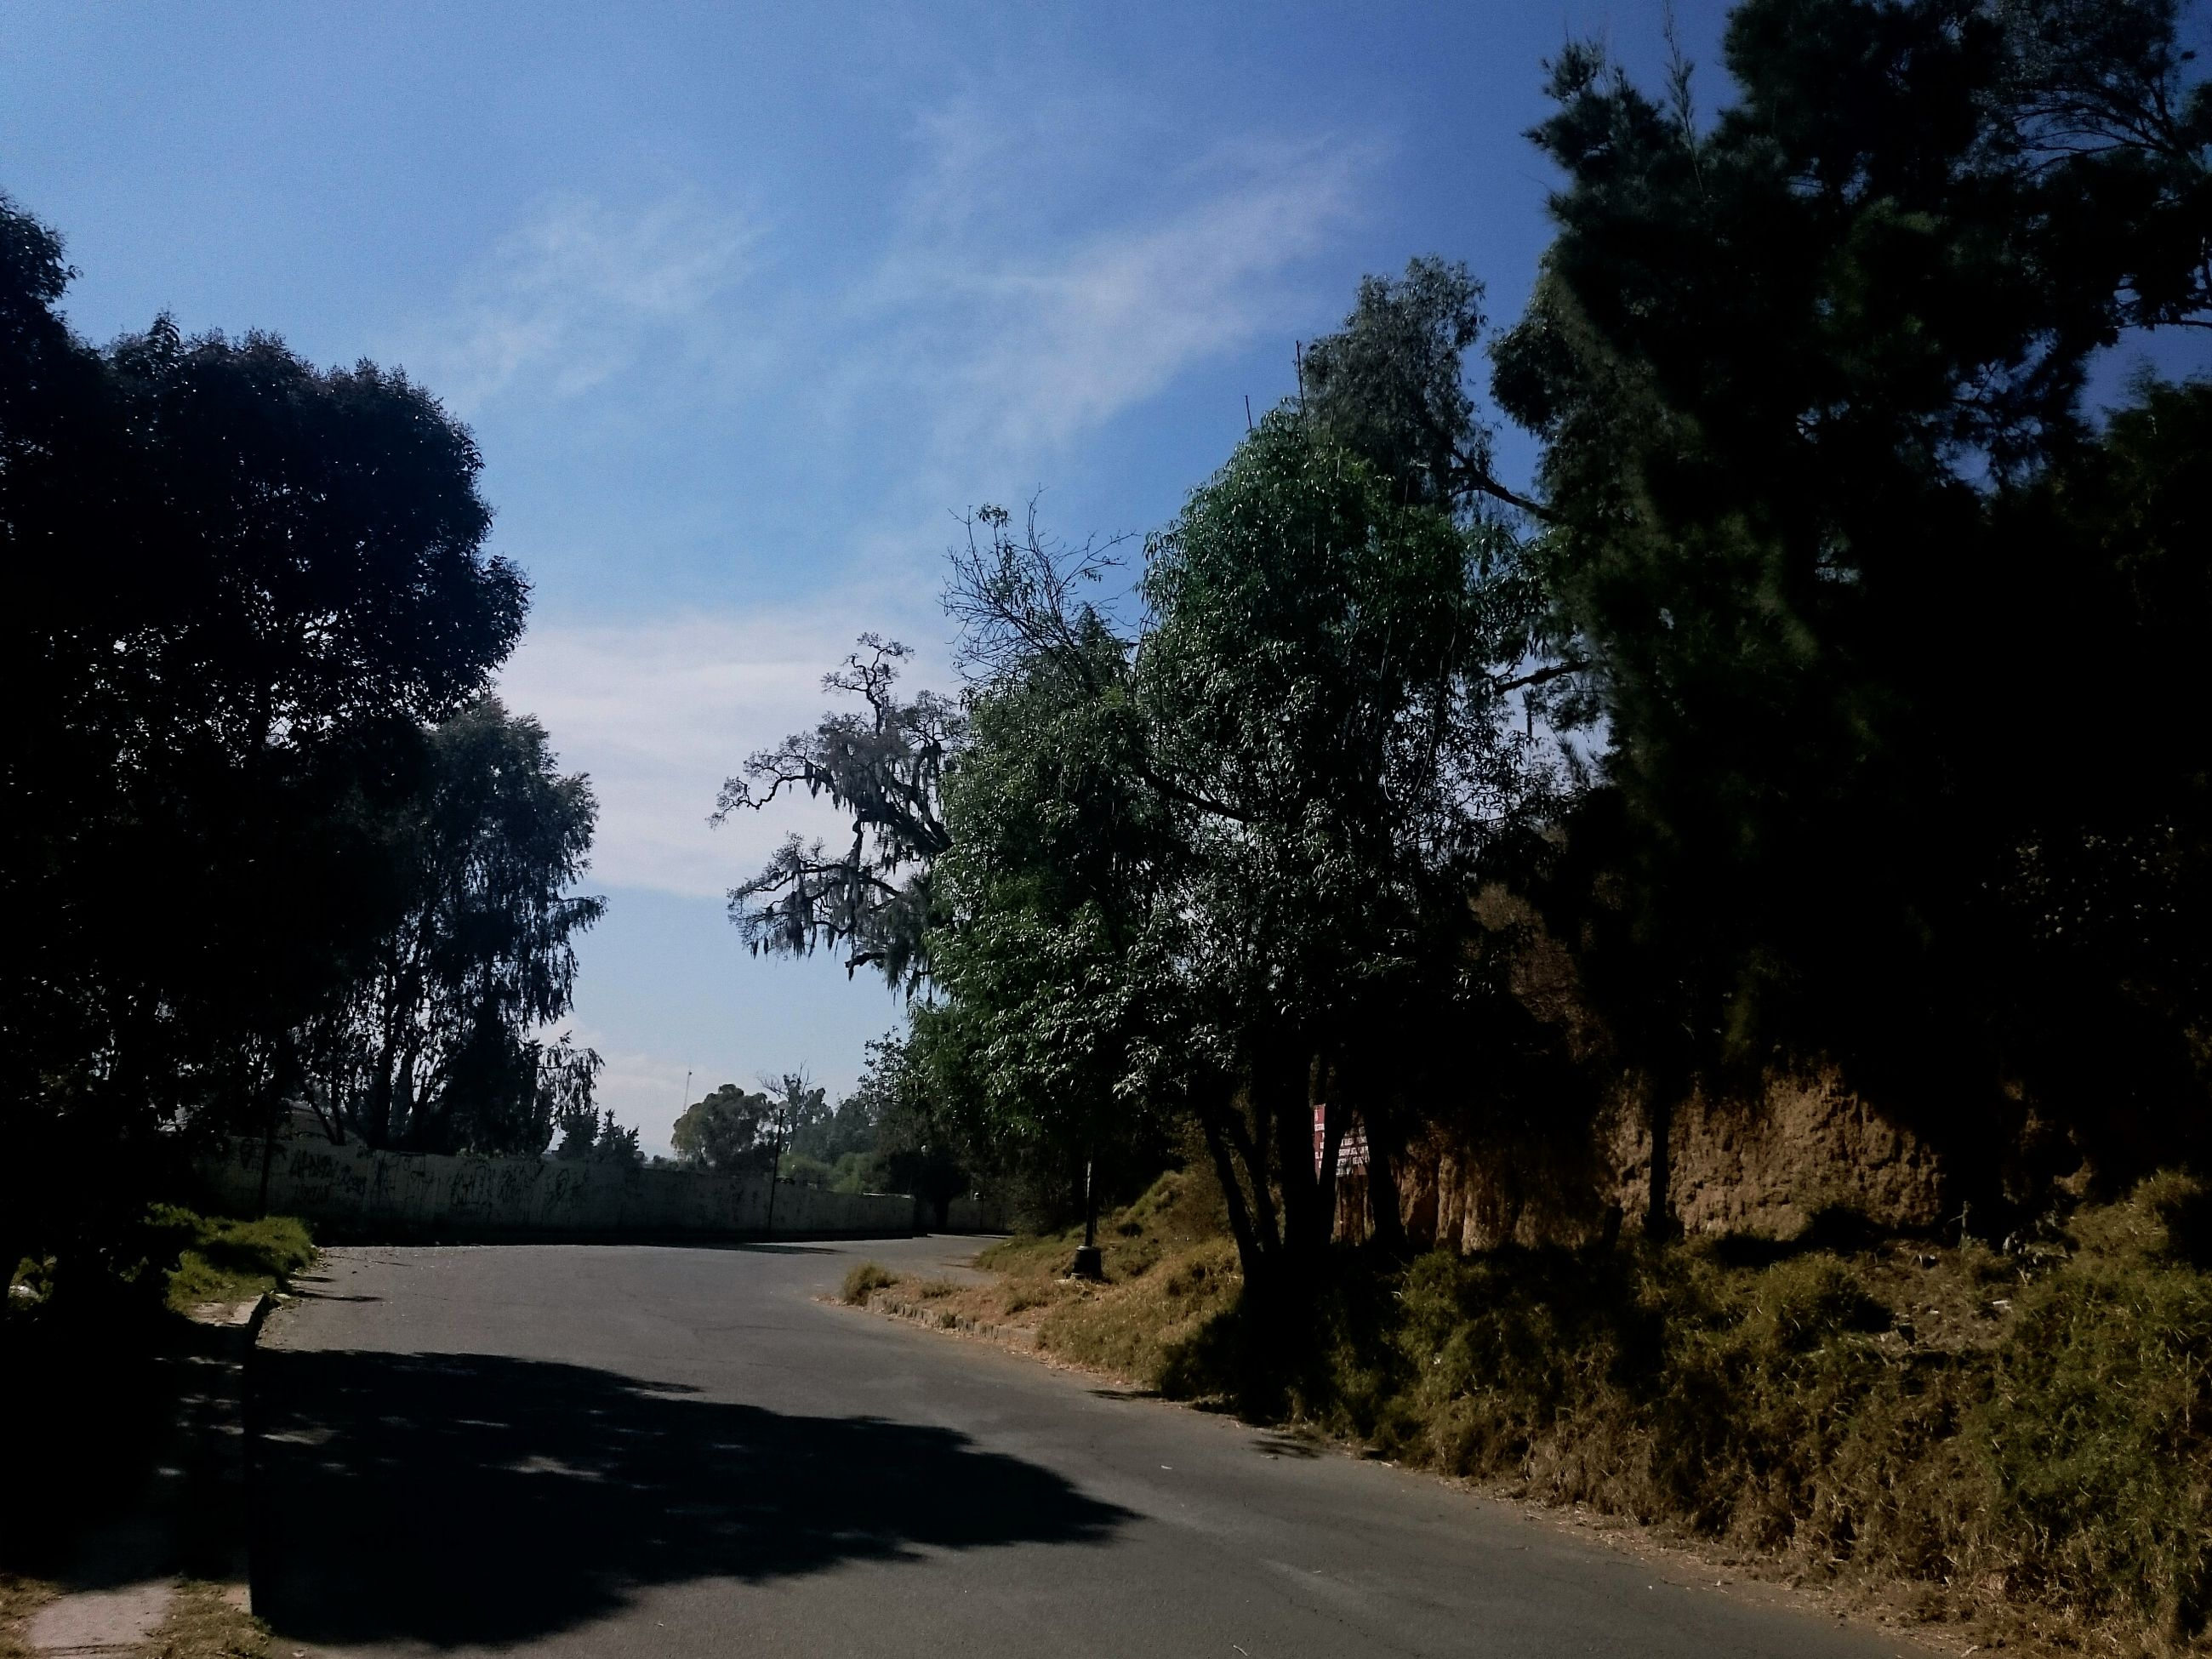 tree, the way forward, sky, tranquility, tranquil scene, road, growth, nature, beauty in nature, scenics, sunlight, footpath, shadow, street, diminishing perspective, transportation, outdoors, no people, day, branch